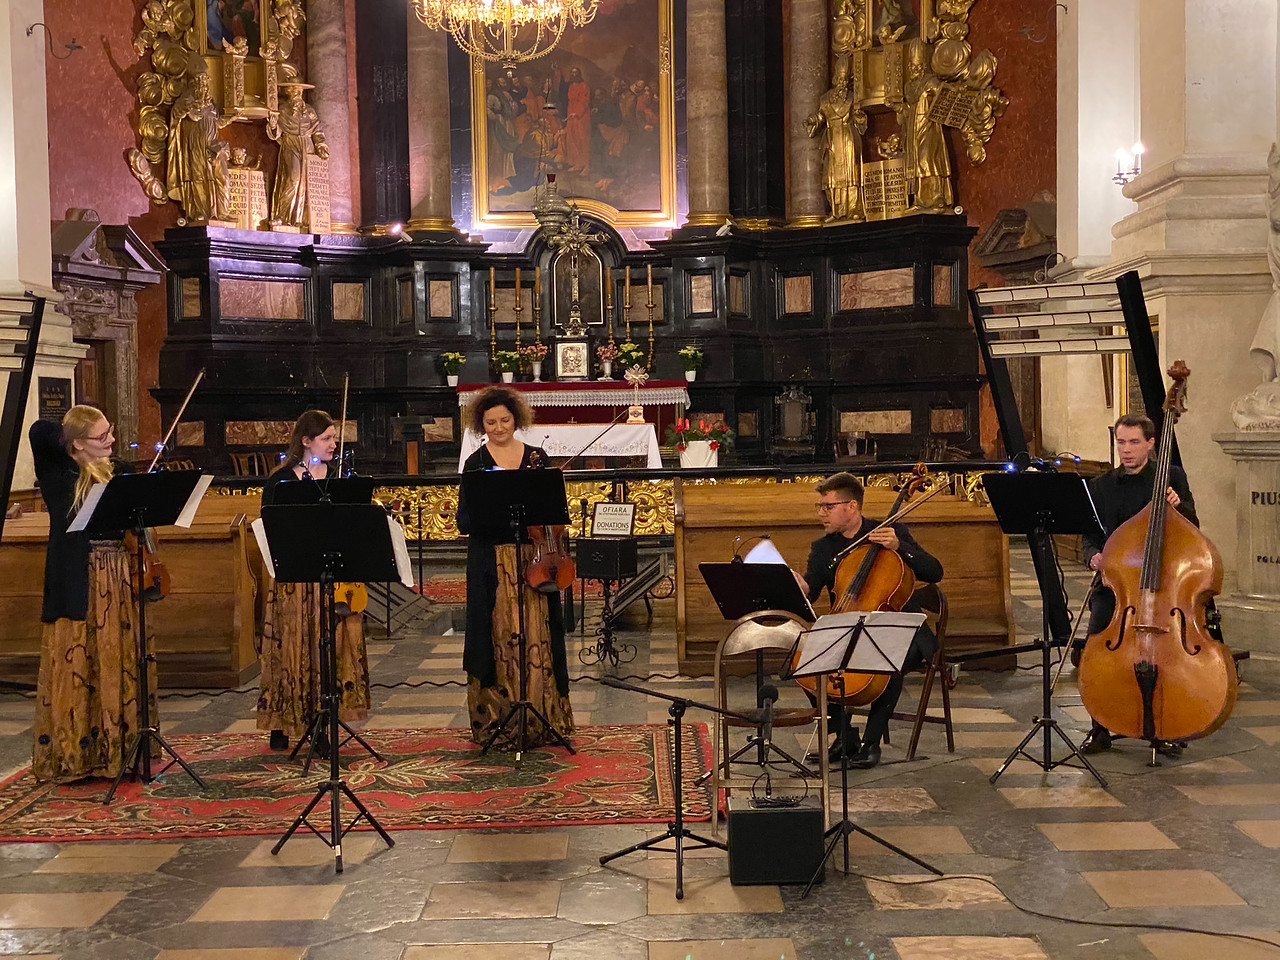 Evening Concert at St Peter's and Paul's Church, Krakow